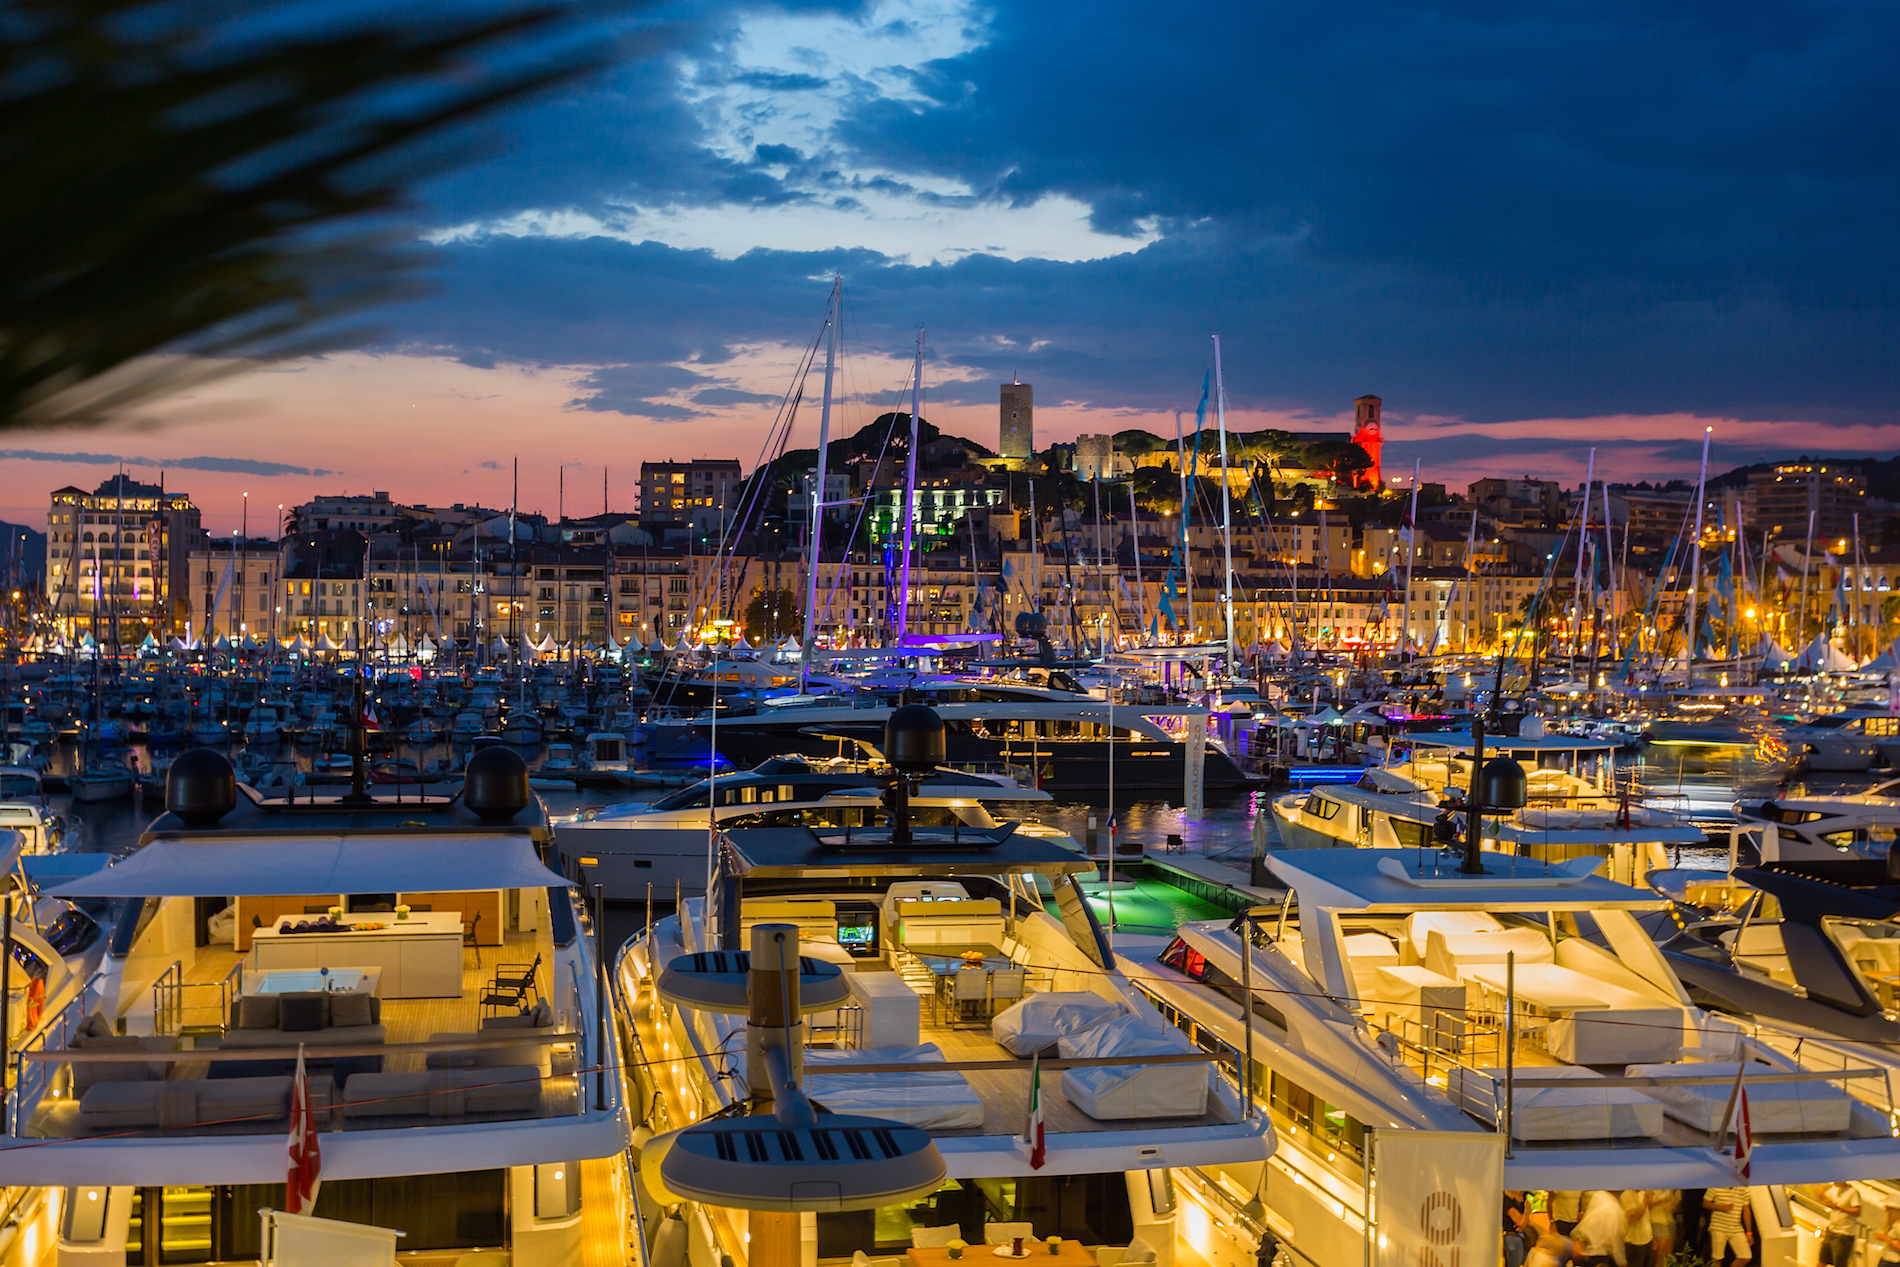 Sunset at Cannes Yachting Festival, France